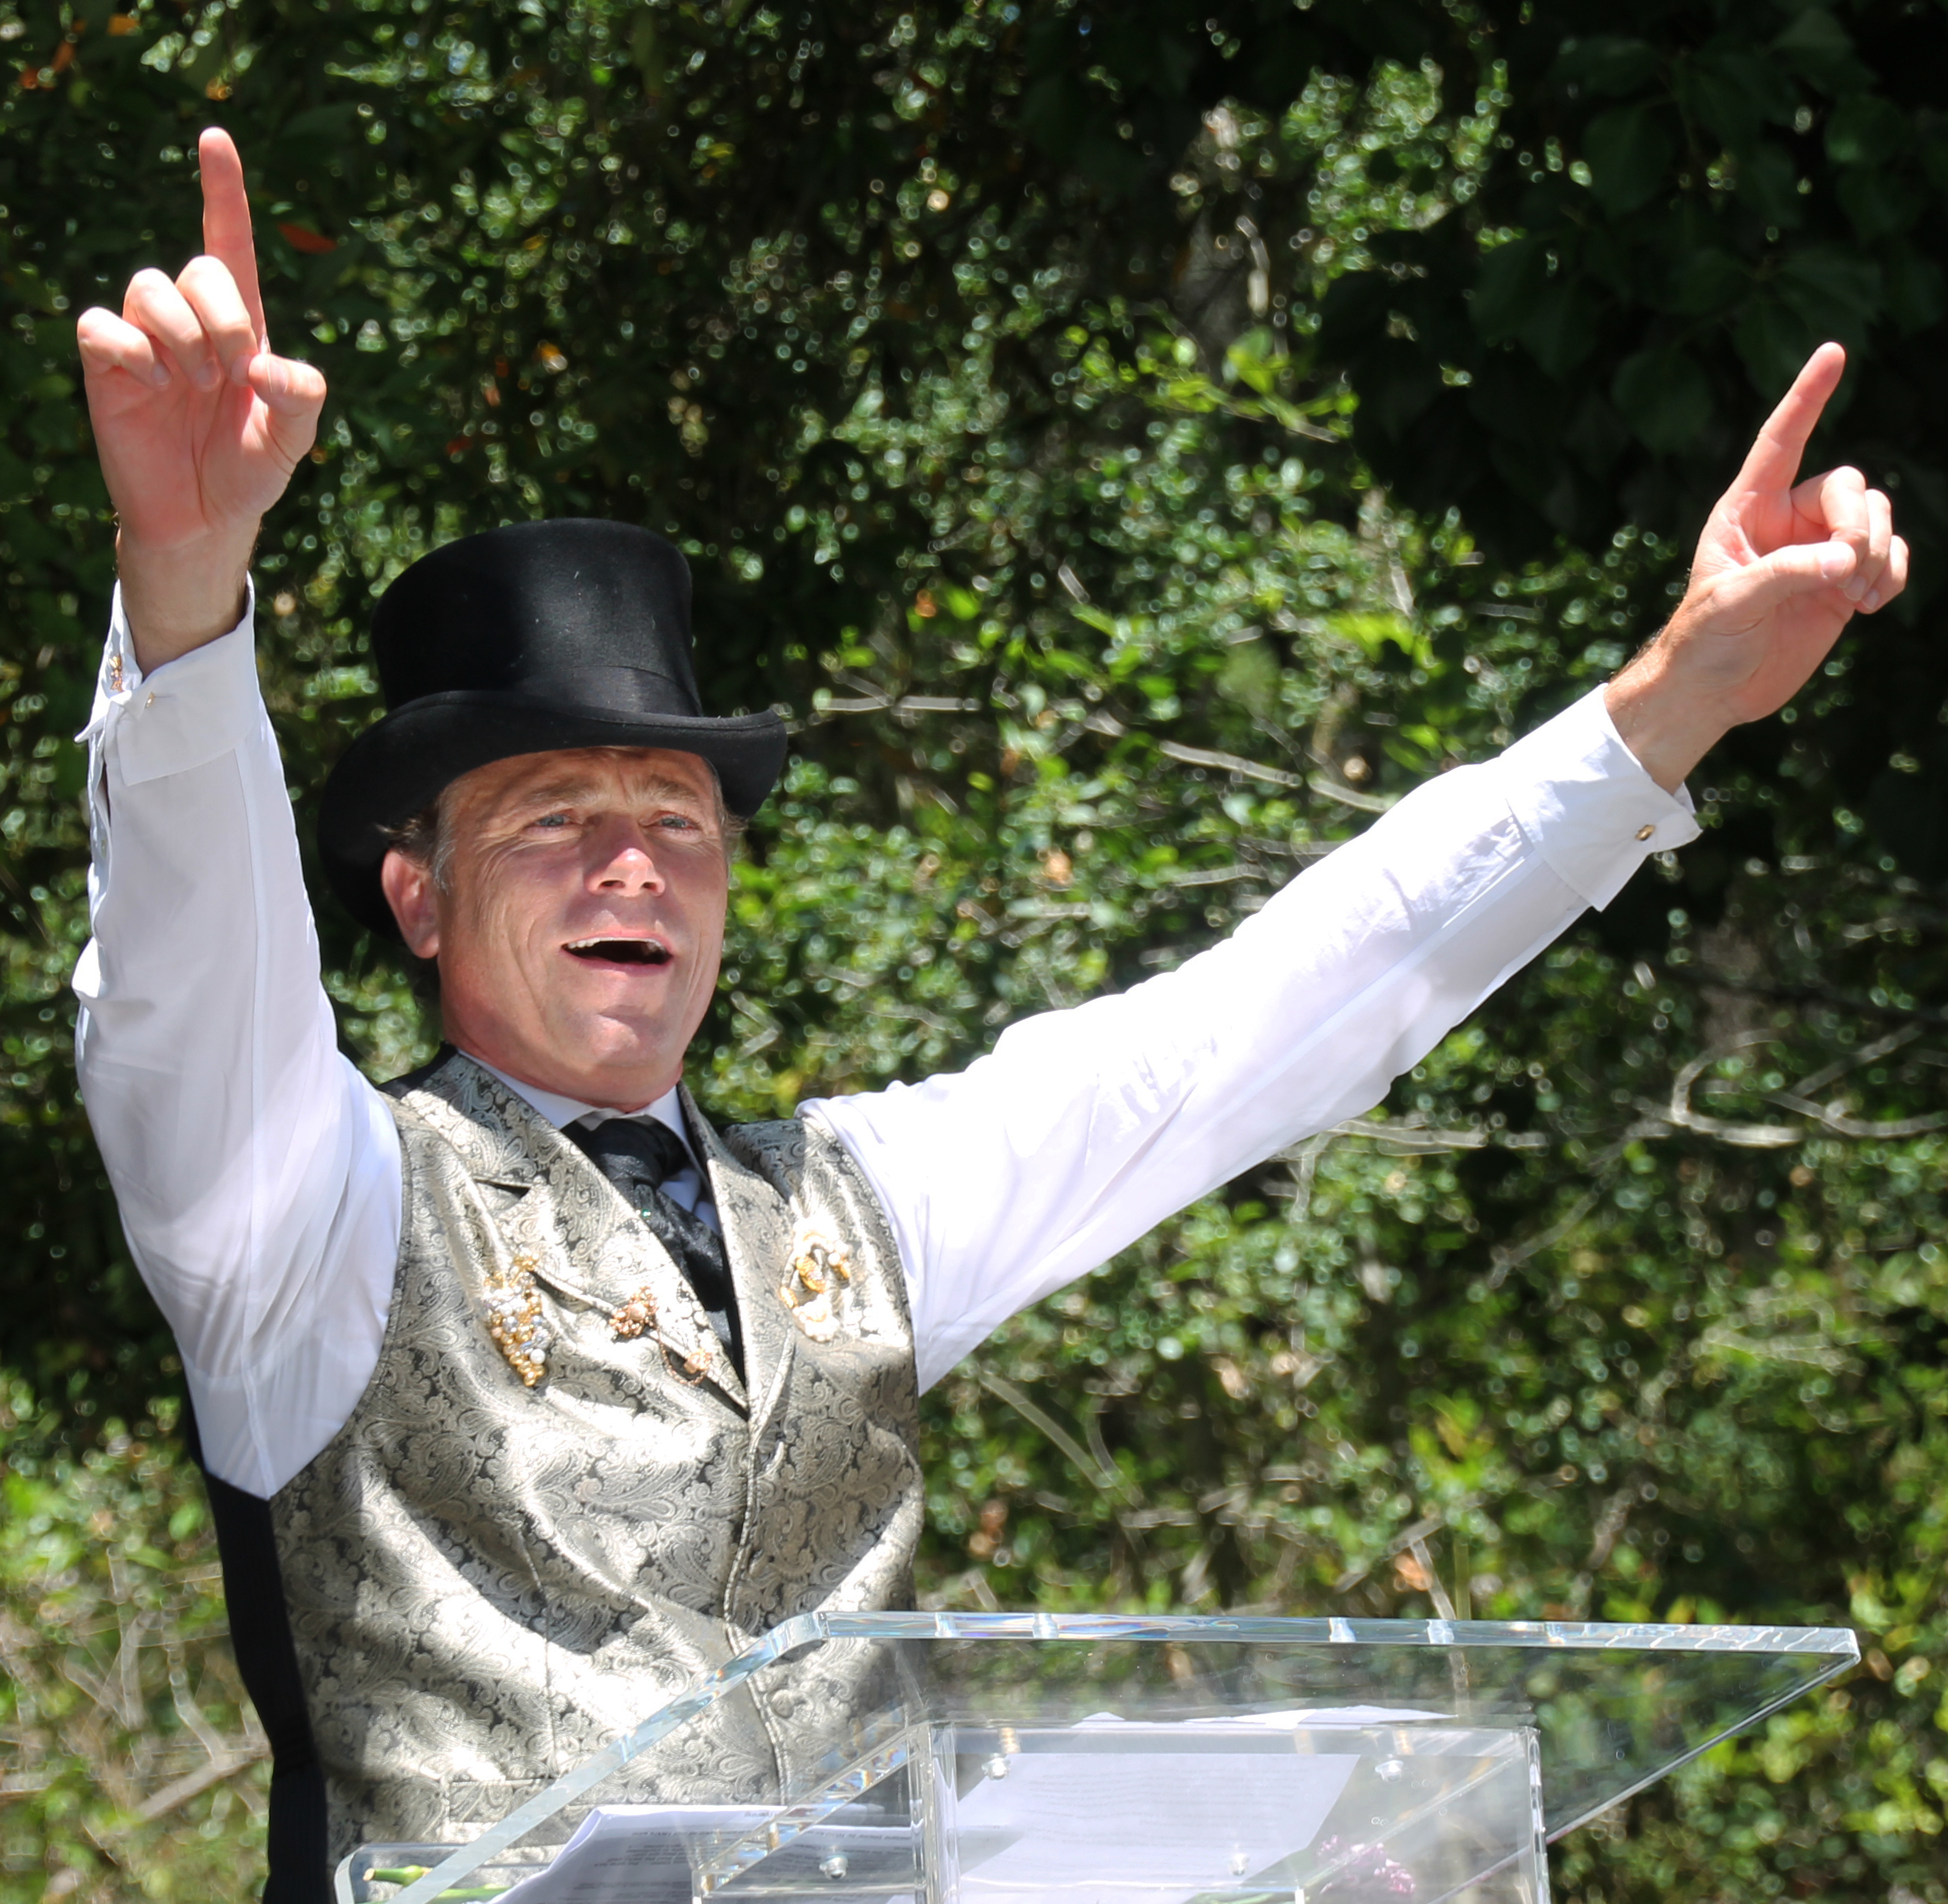 photo essay vallejo pals return to buena vista sonoma sun jean charles boisset played the role of a french businessman a focus on on wine not too far from the truth right he gave three big cheers for the